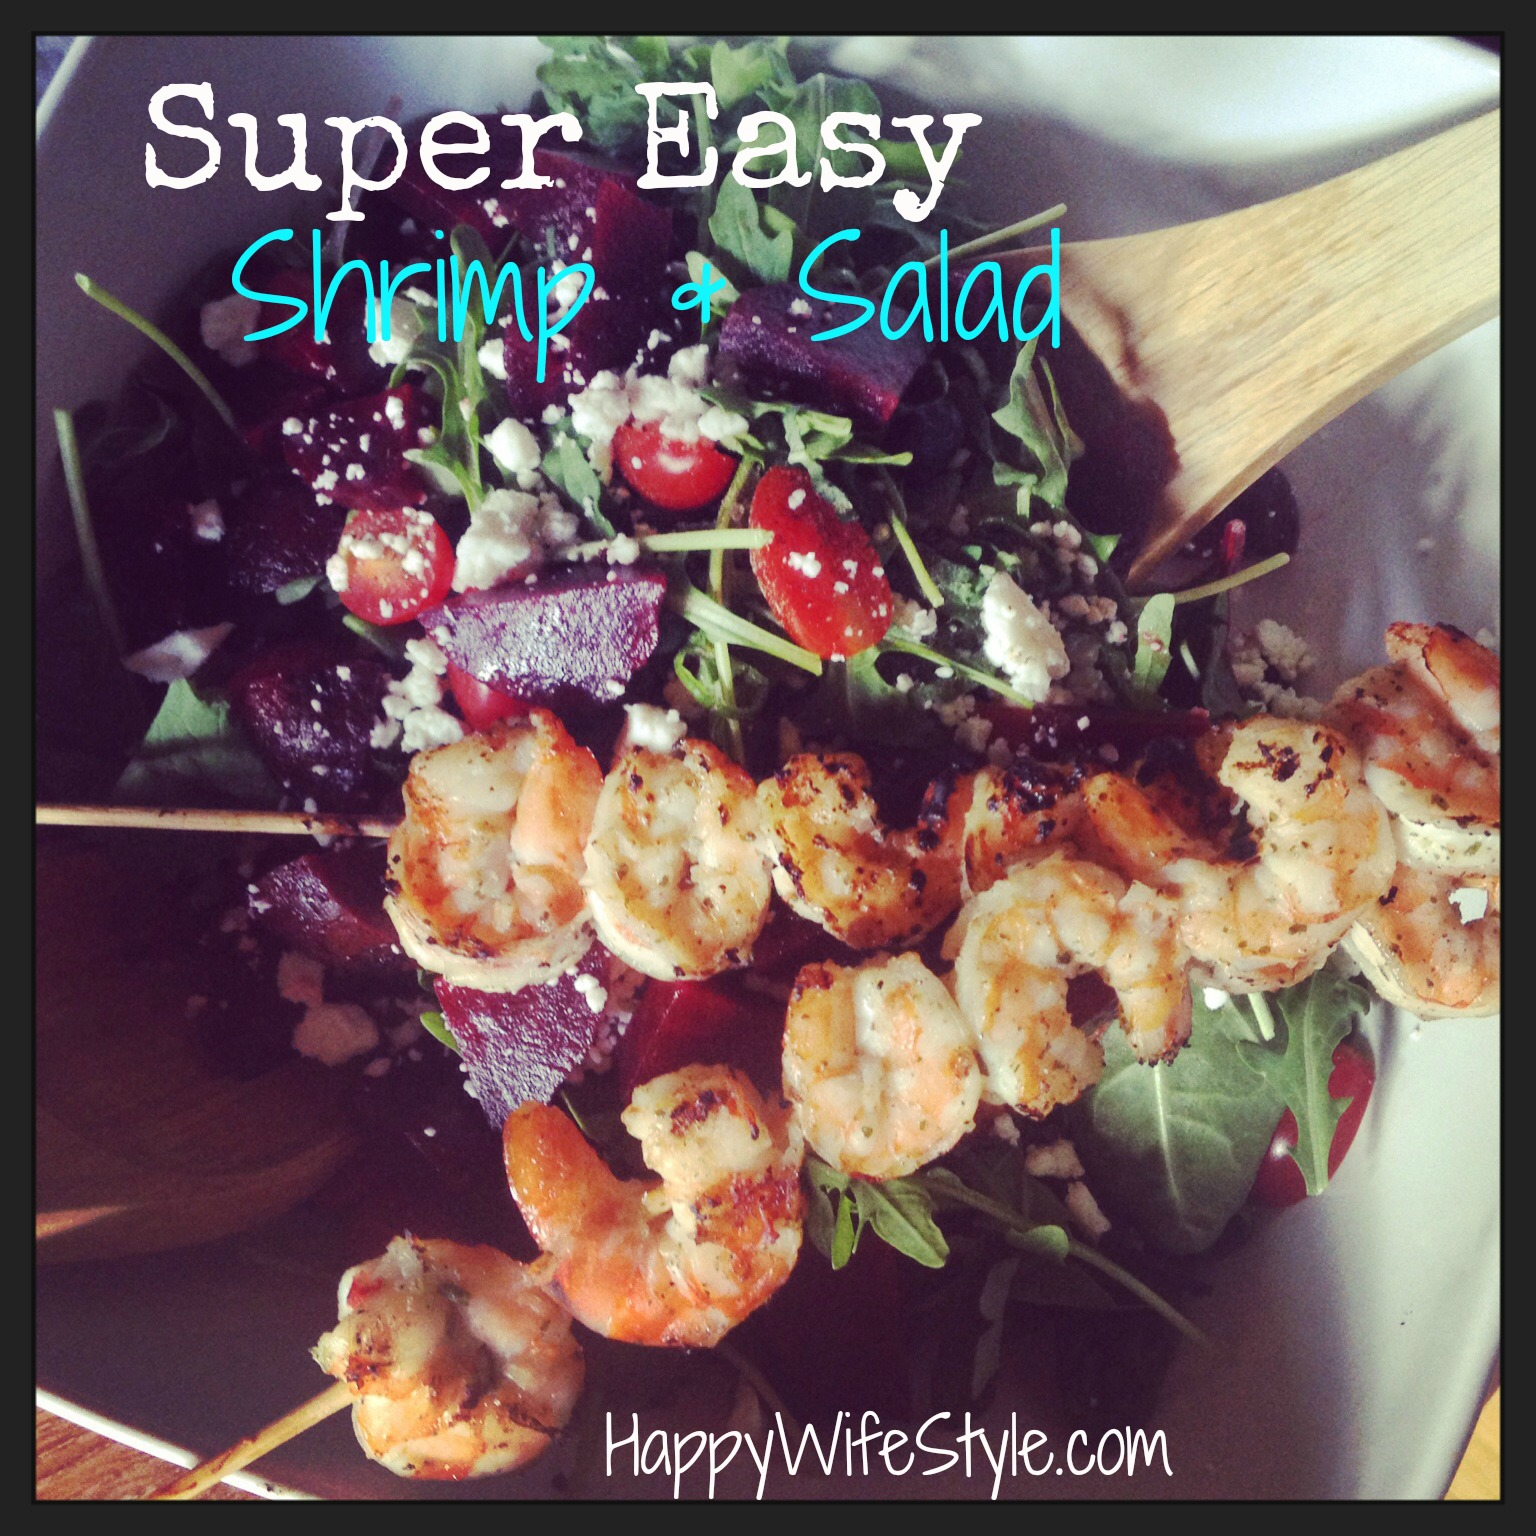 shrimp-and-salad